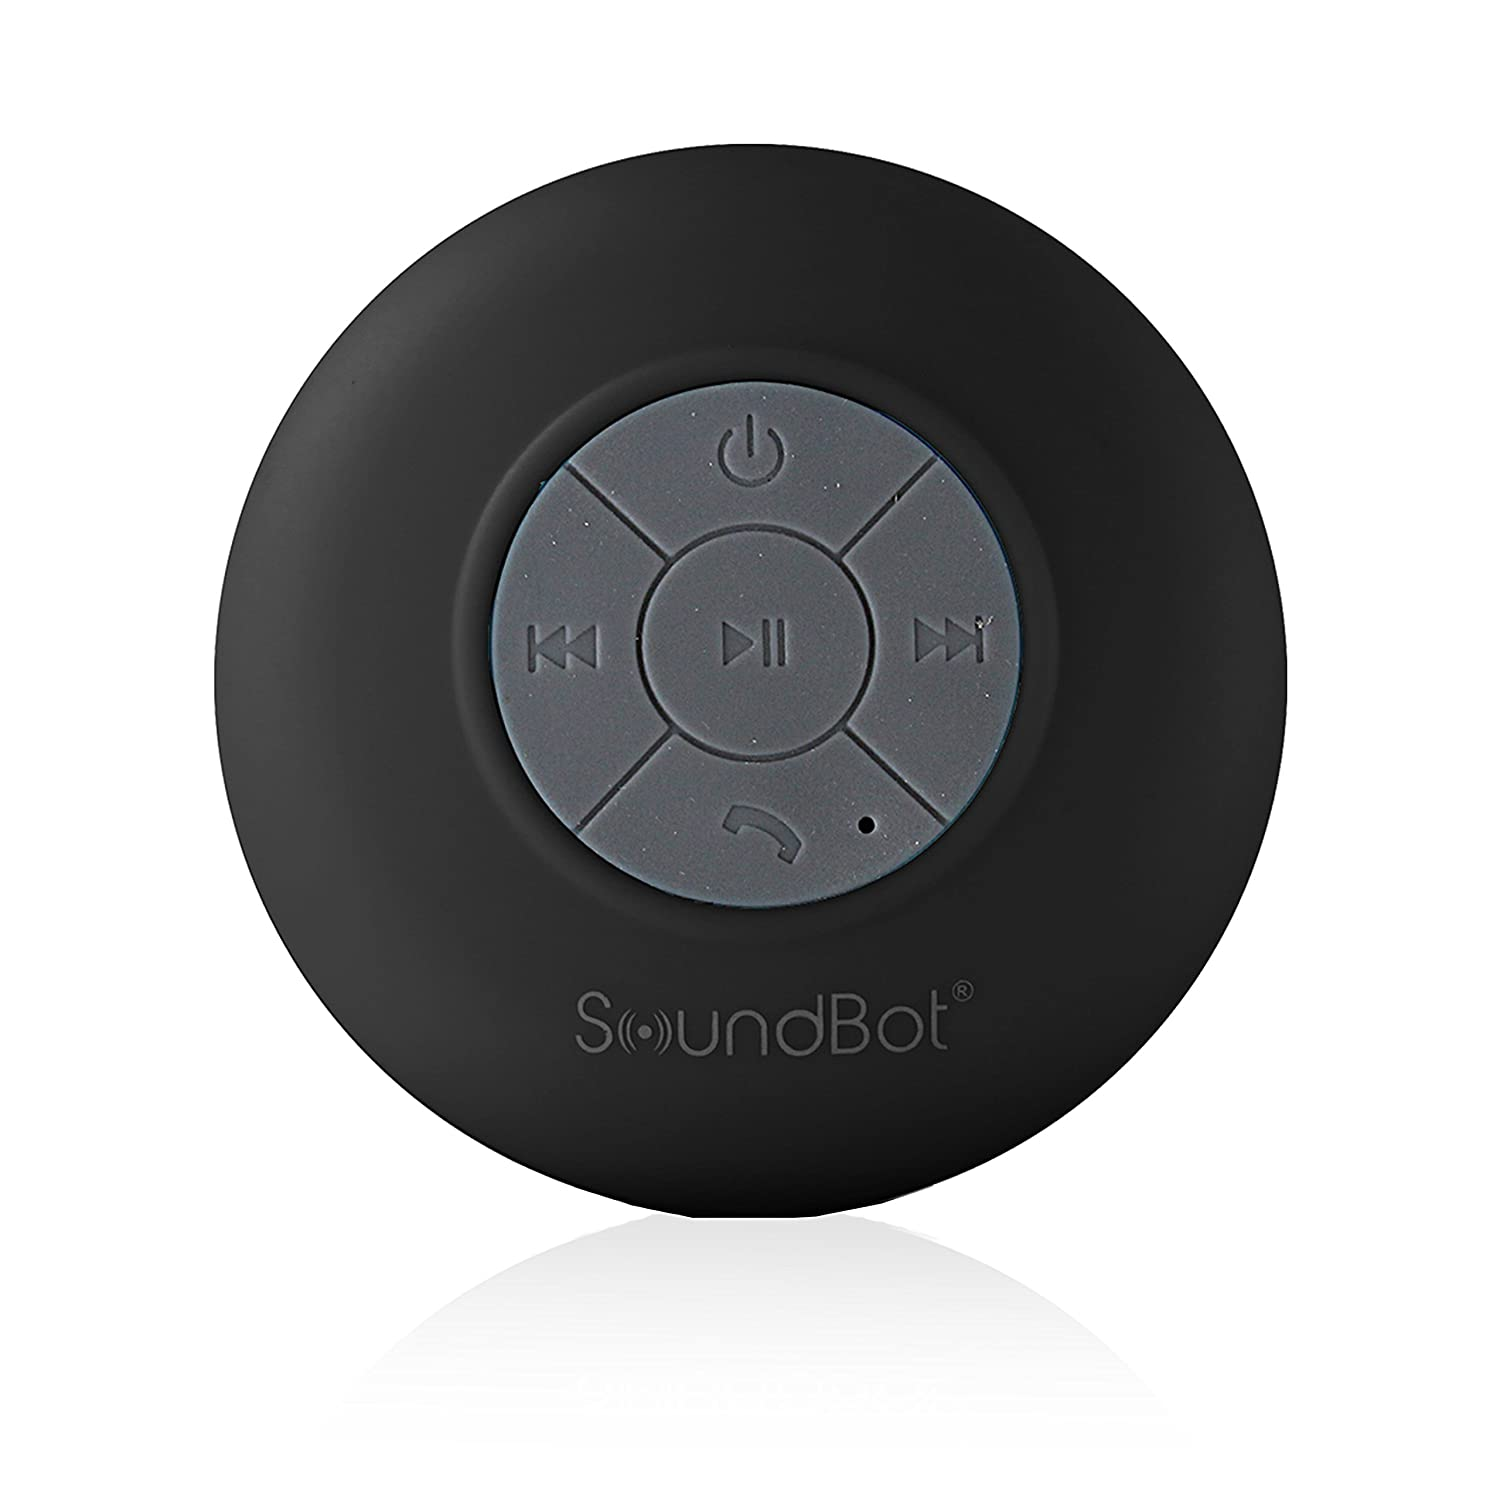 SoundBot® SB510 HD Water Resistant Bluetooth 3.0 Shower Speaker, Handsfree Portable Speakerphone with Built-in Mic, 6hrs of playtime, Control Buttons and Dedicated Suction Cup for Showers ..